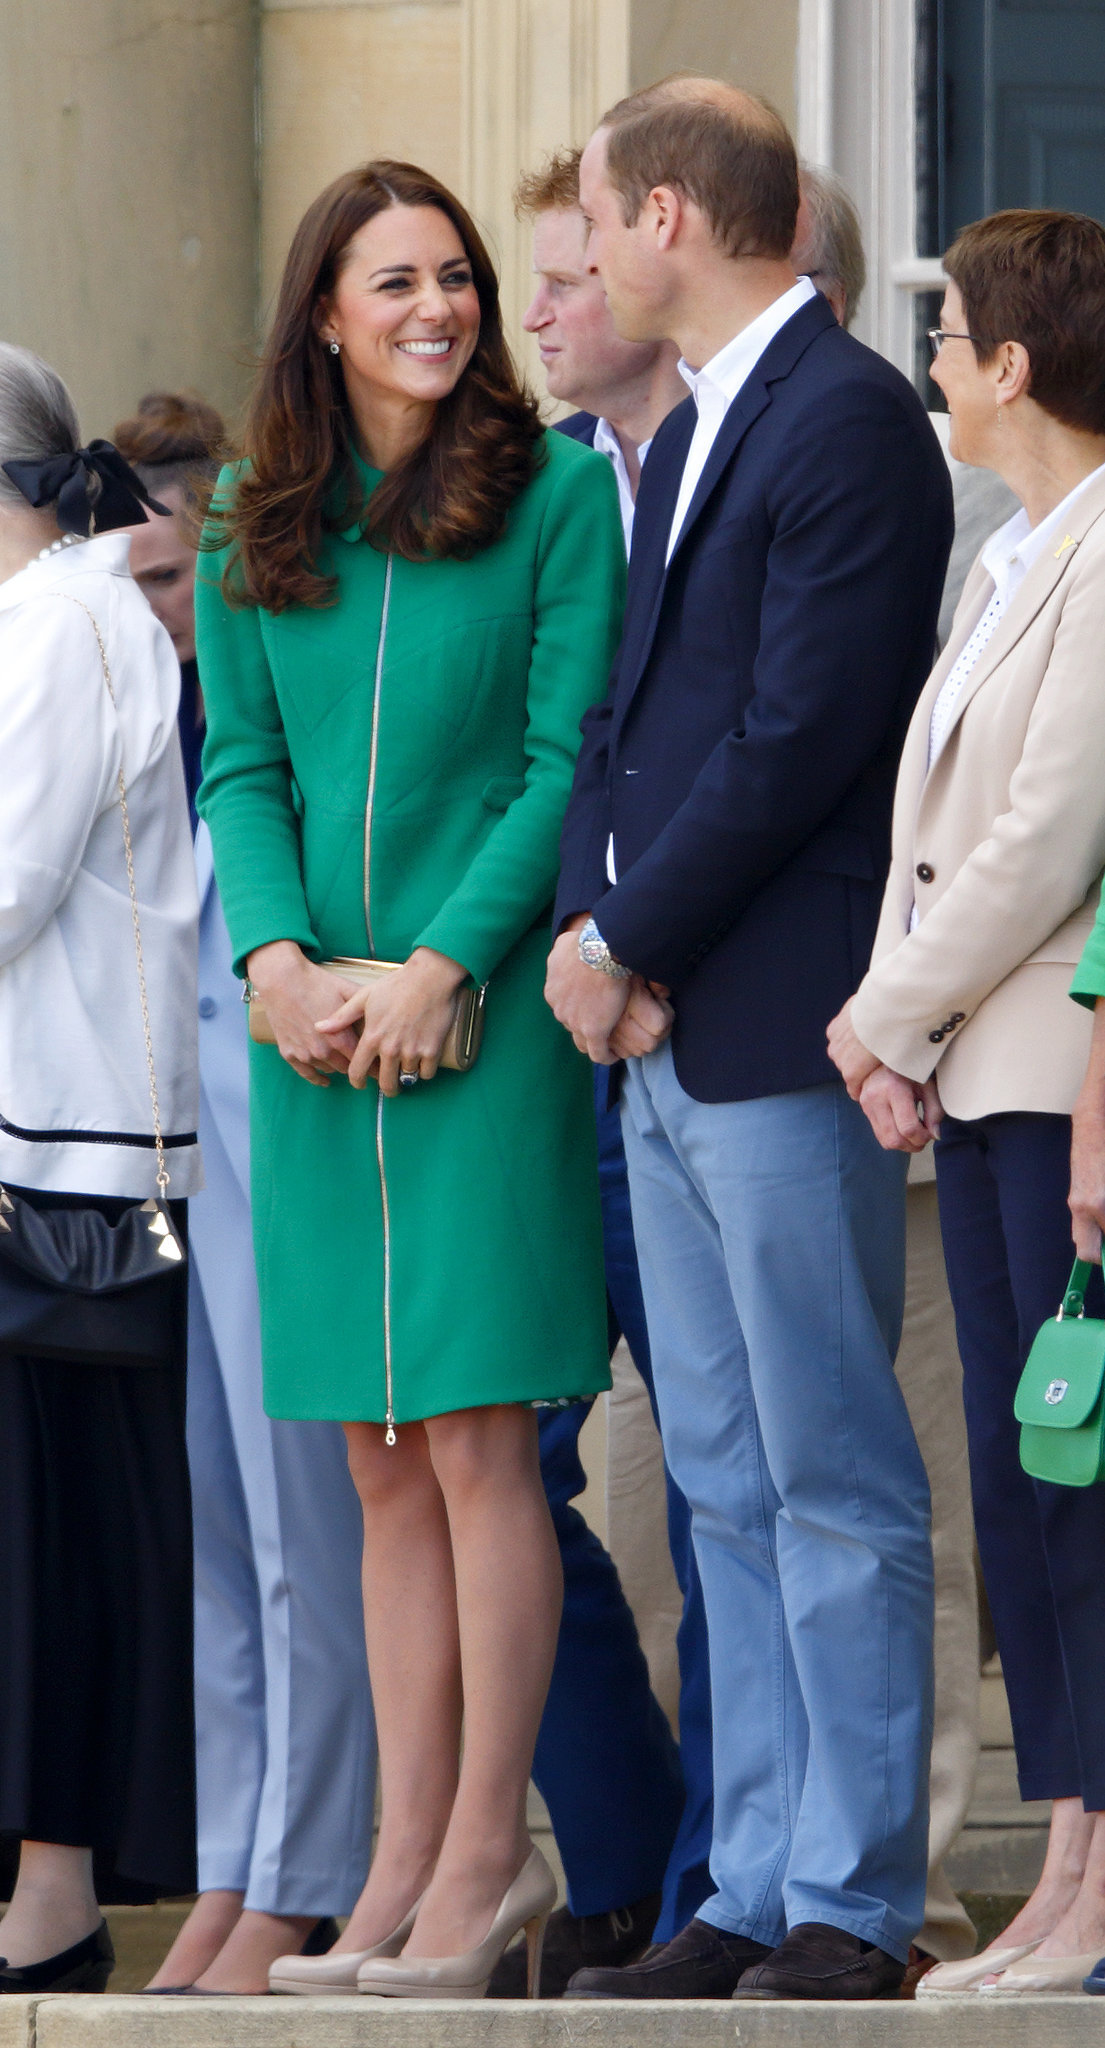 Kate smiled at William while attending the Tour De France in the Summer of 2014.